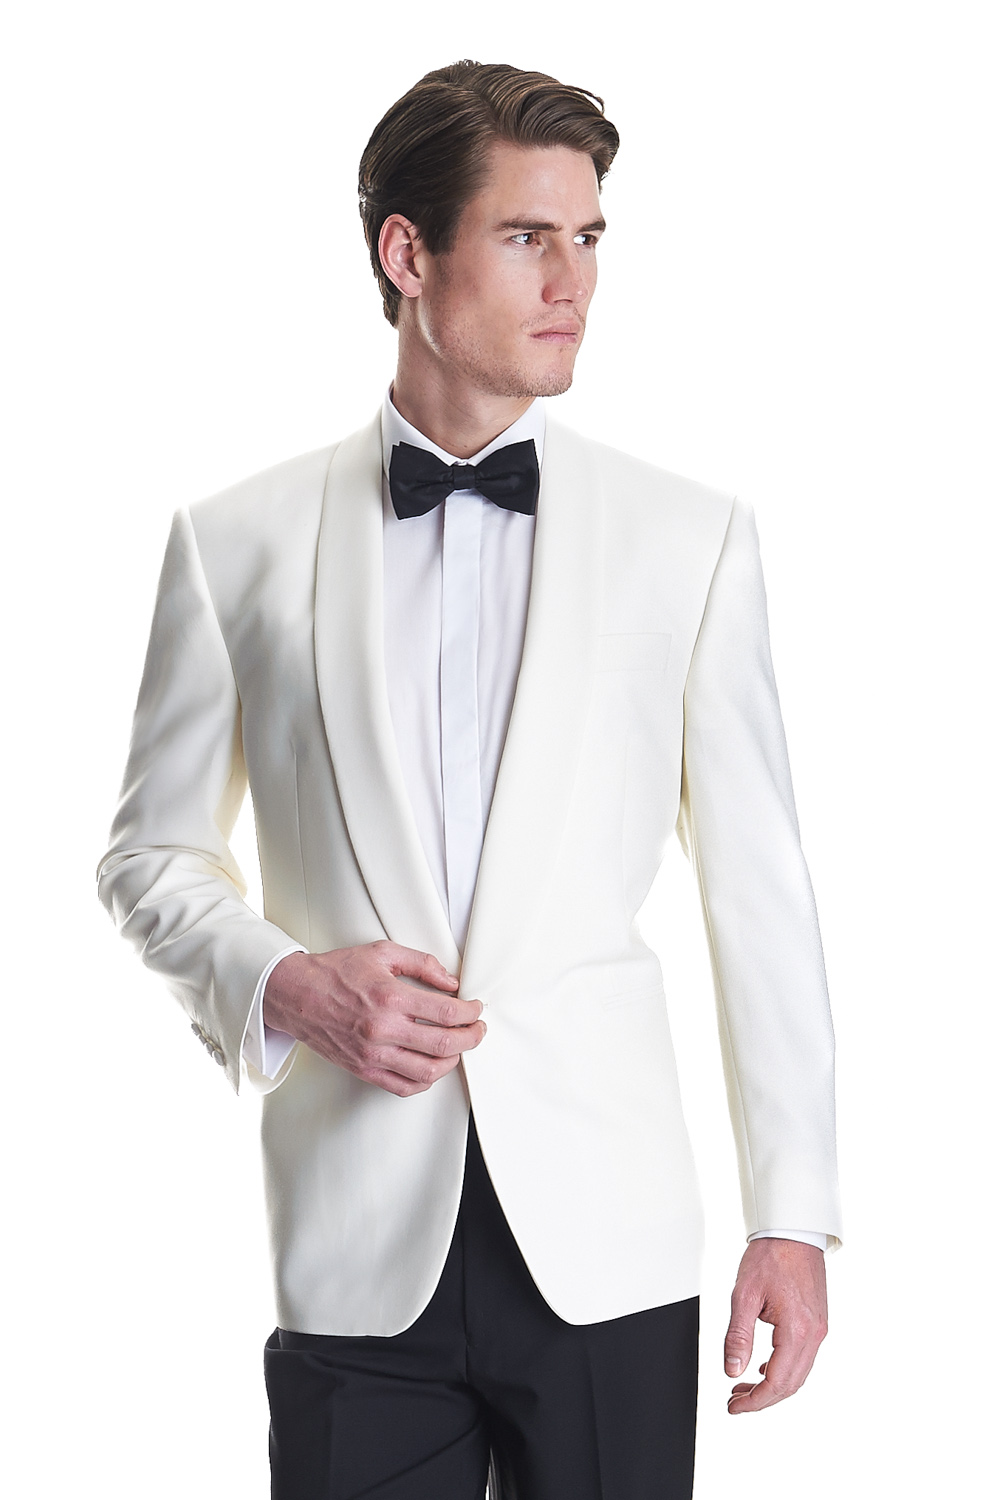 Make an impression at your next Black Tie event with our range of Tuxedo sets, 3 piece Dinner Suits, formal shirts and belts. Free Click & Collect! By browsing Matalan, you agree to our use of cookies.